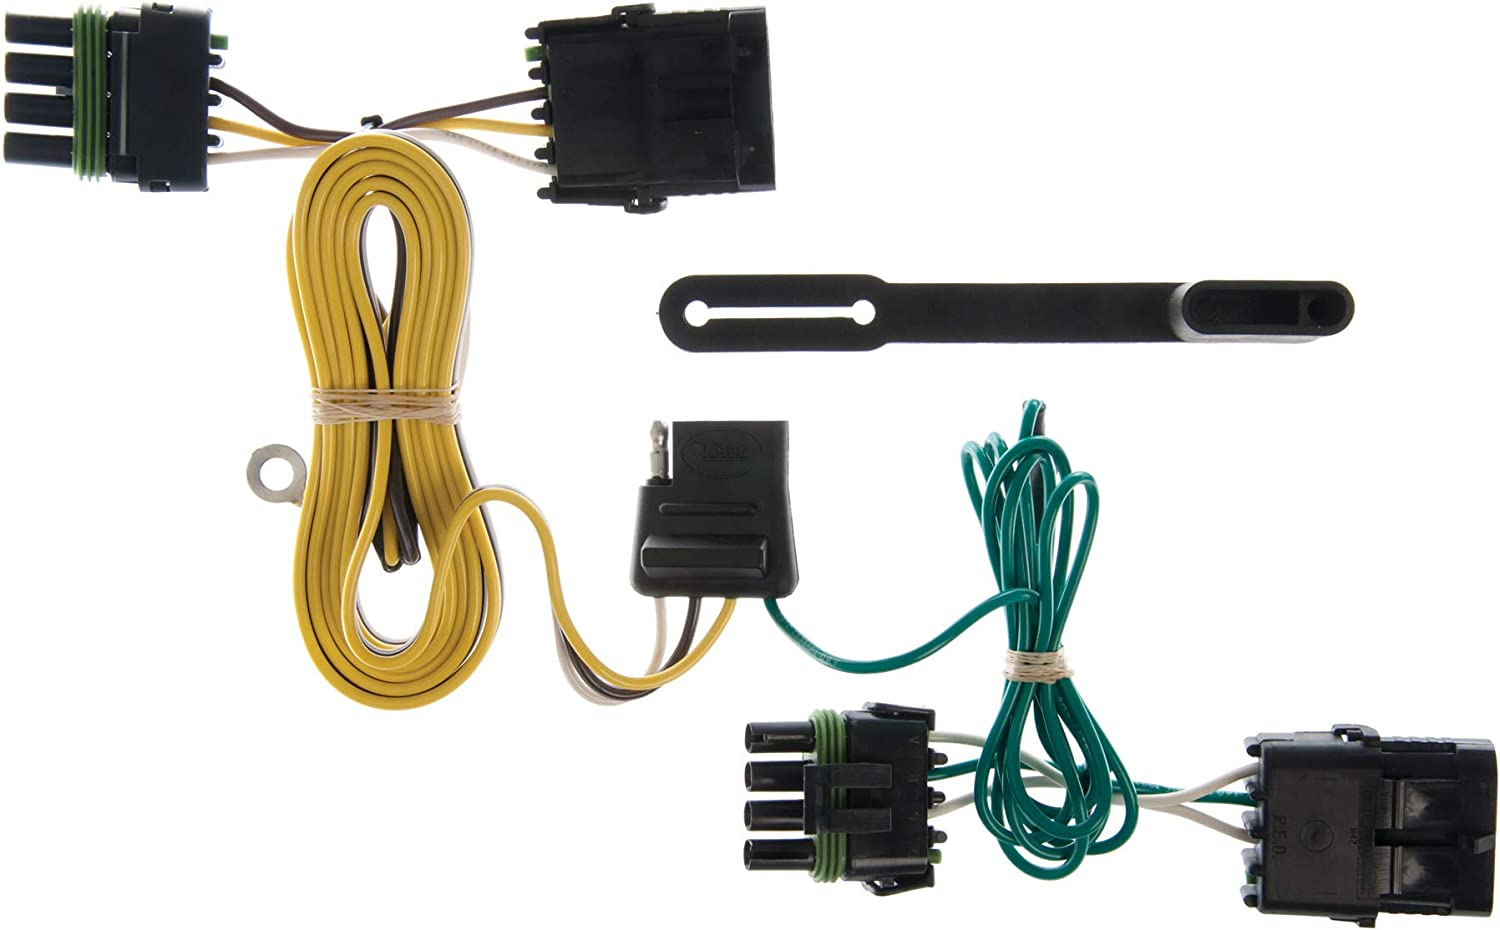 Jeep Yj Trailer Wiring Harness from images-na.ssl-images-amazon.com